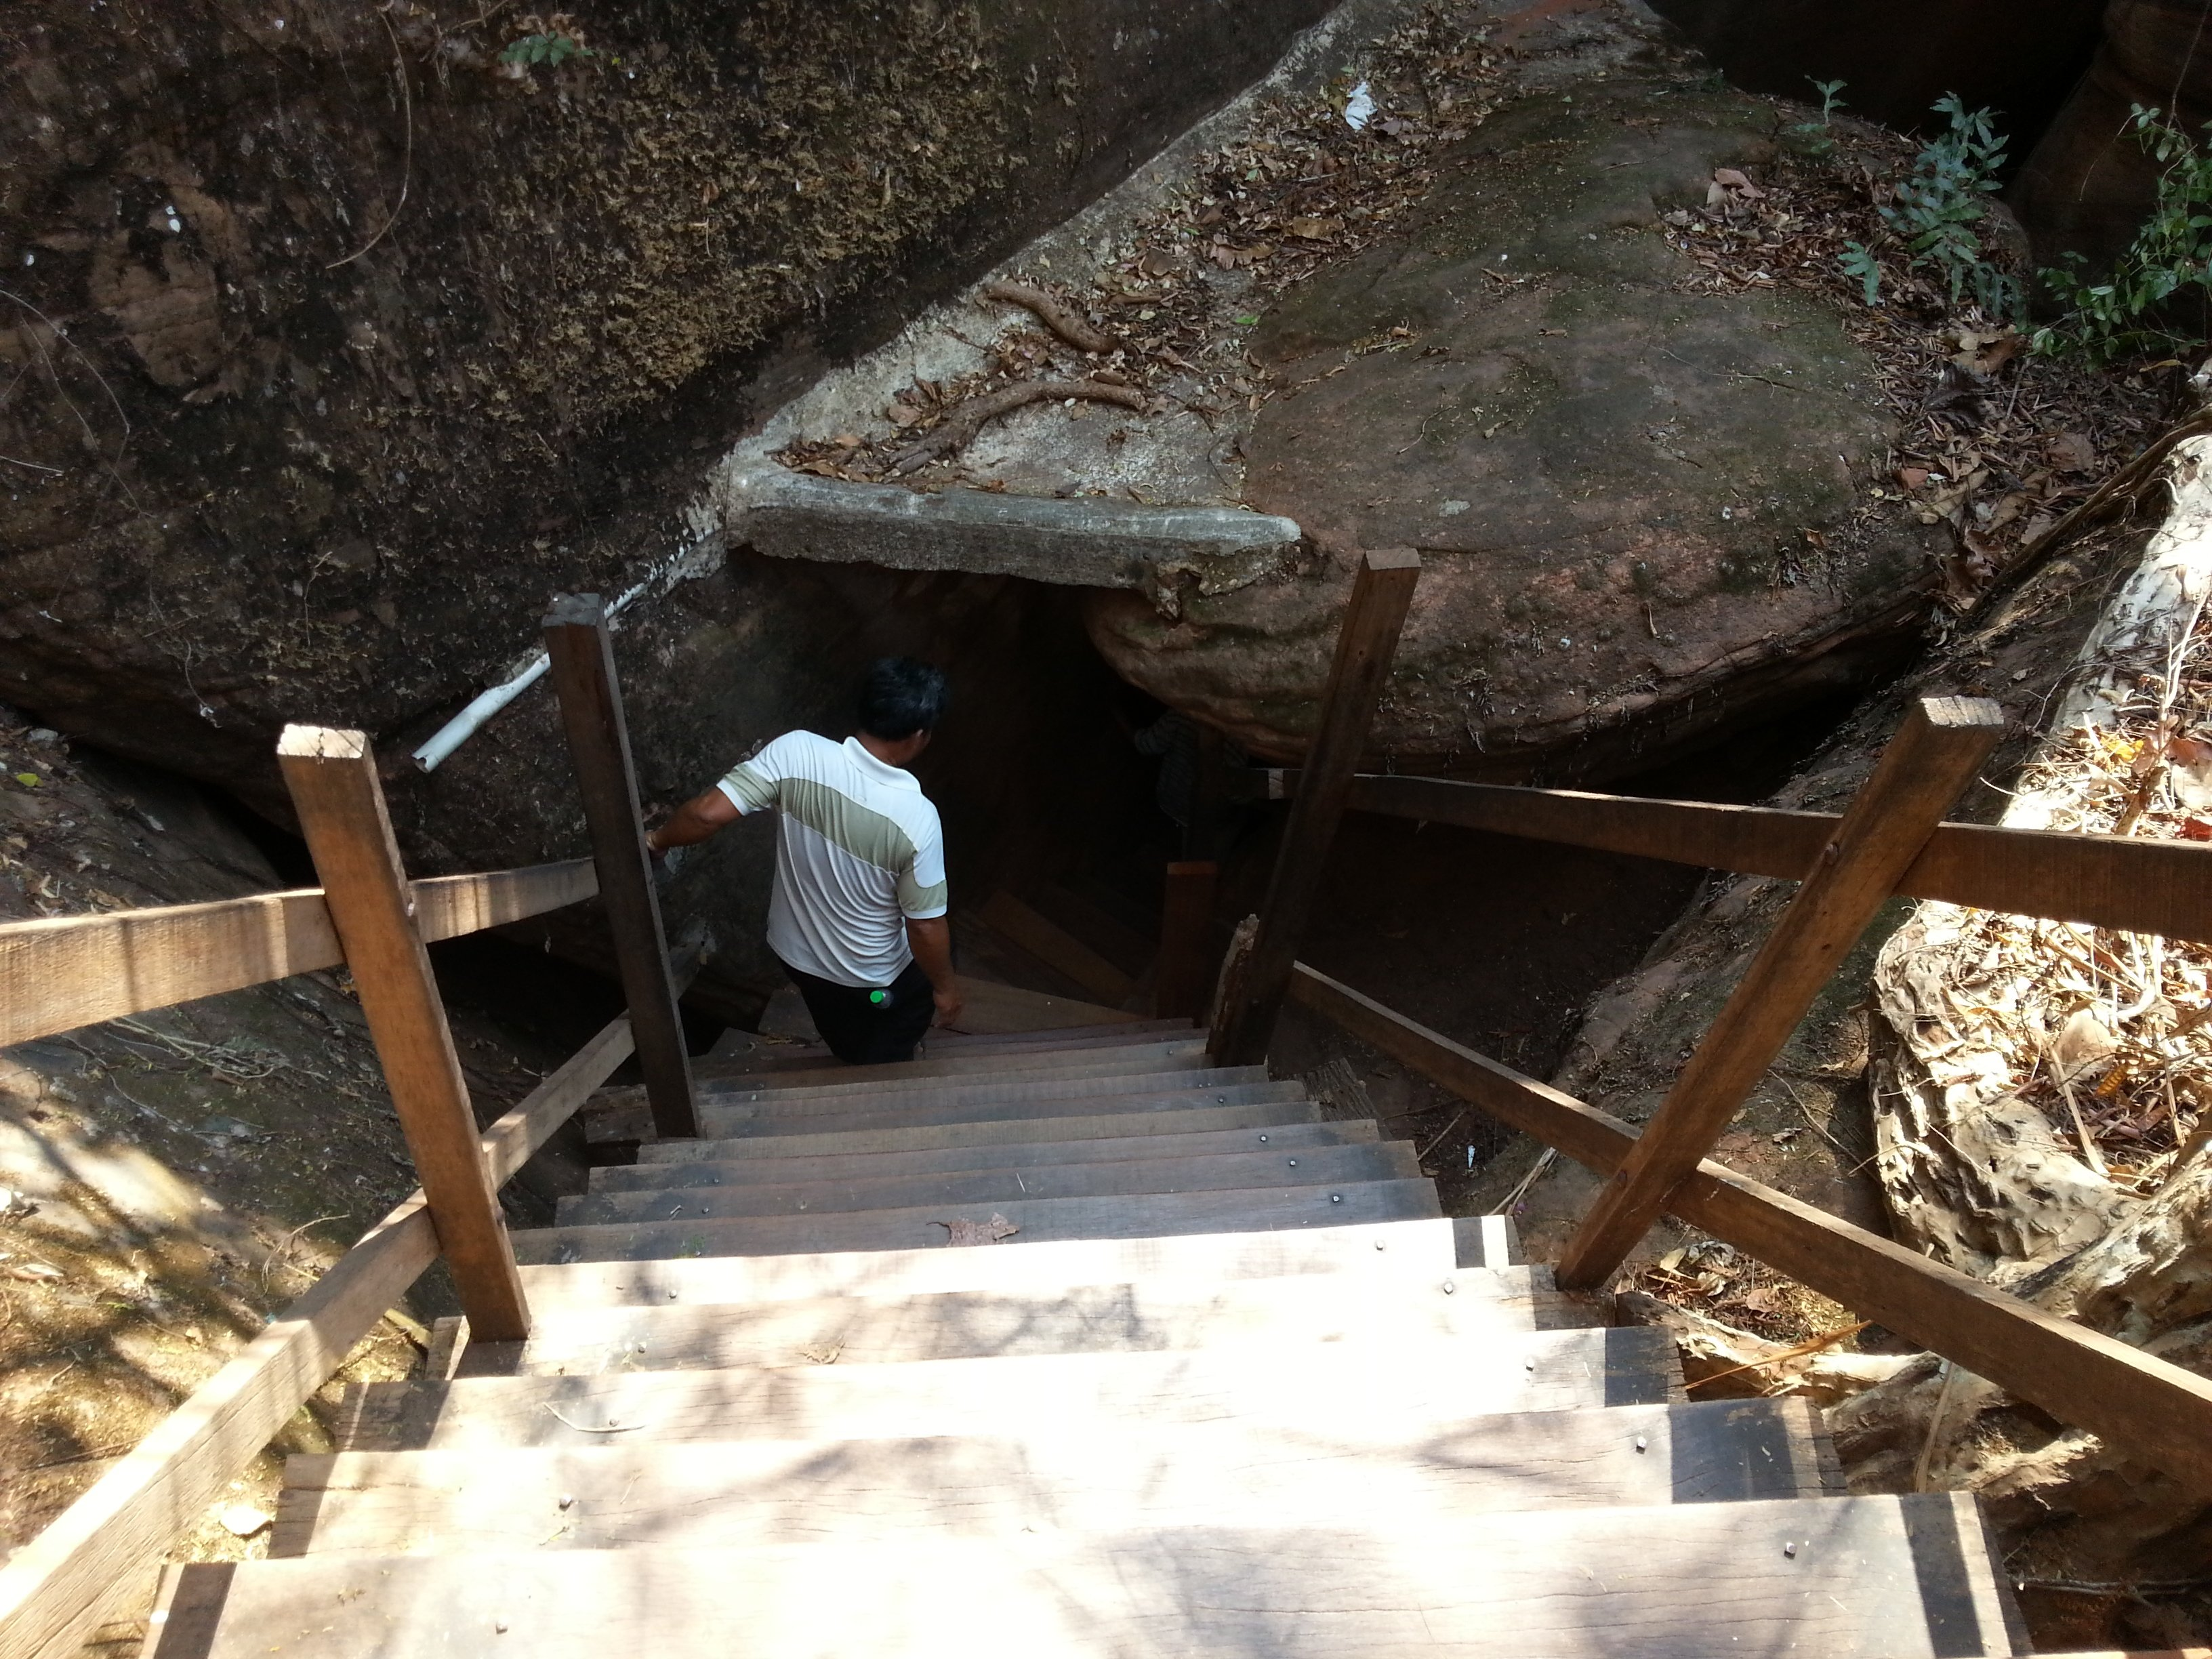 Stairway from level 5 to level 4 passes through a cave